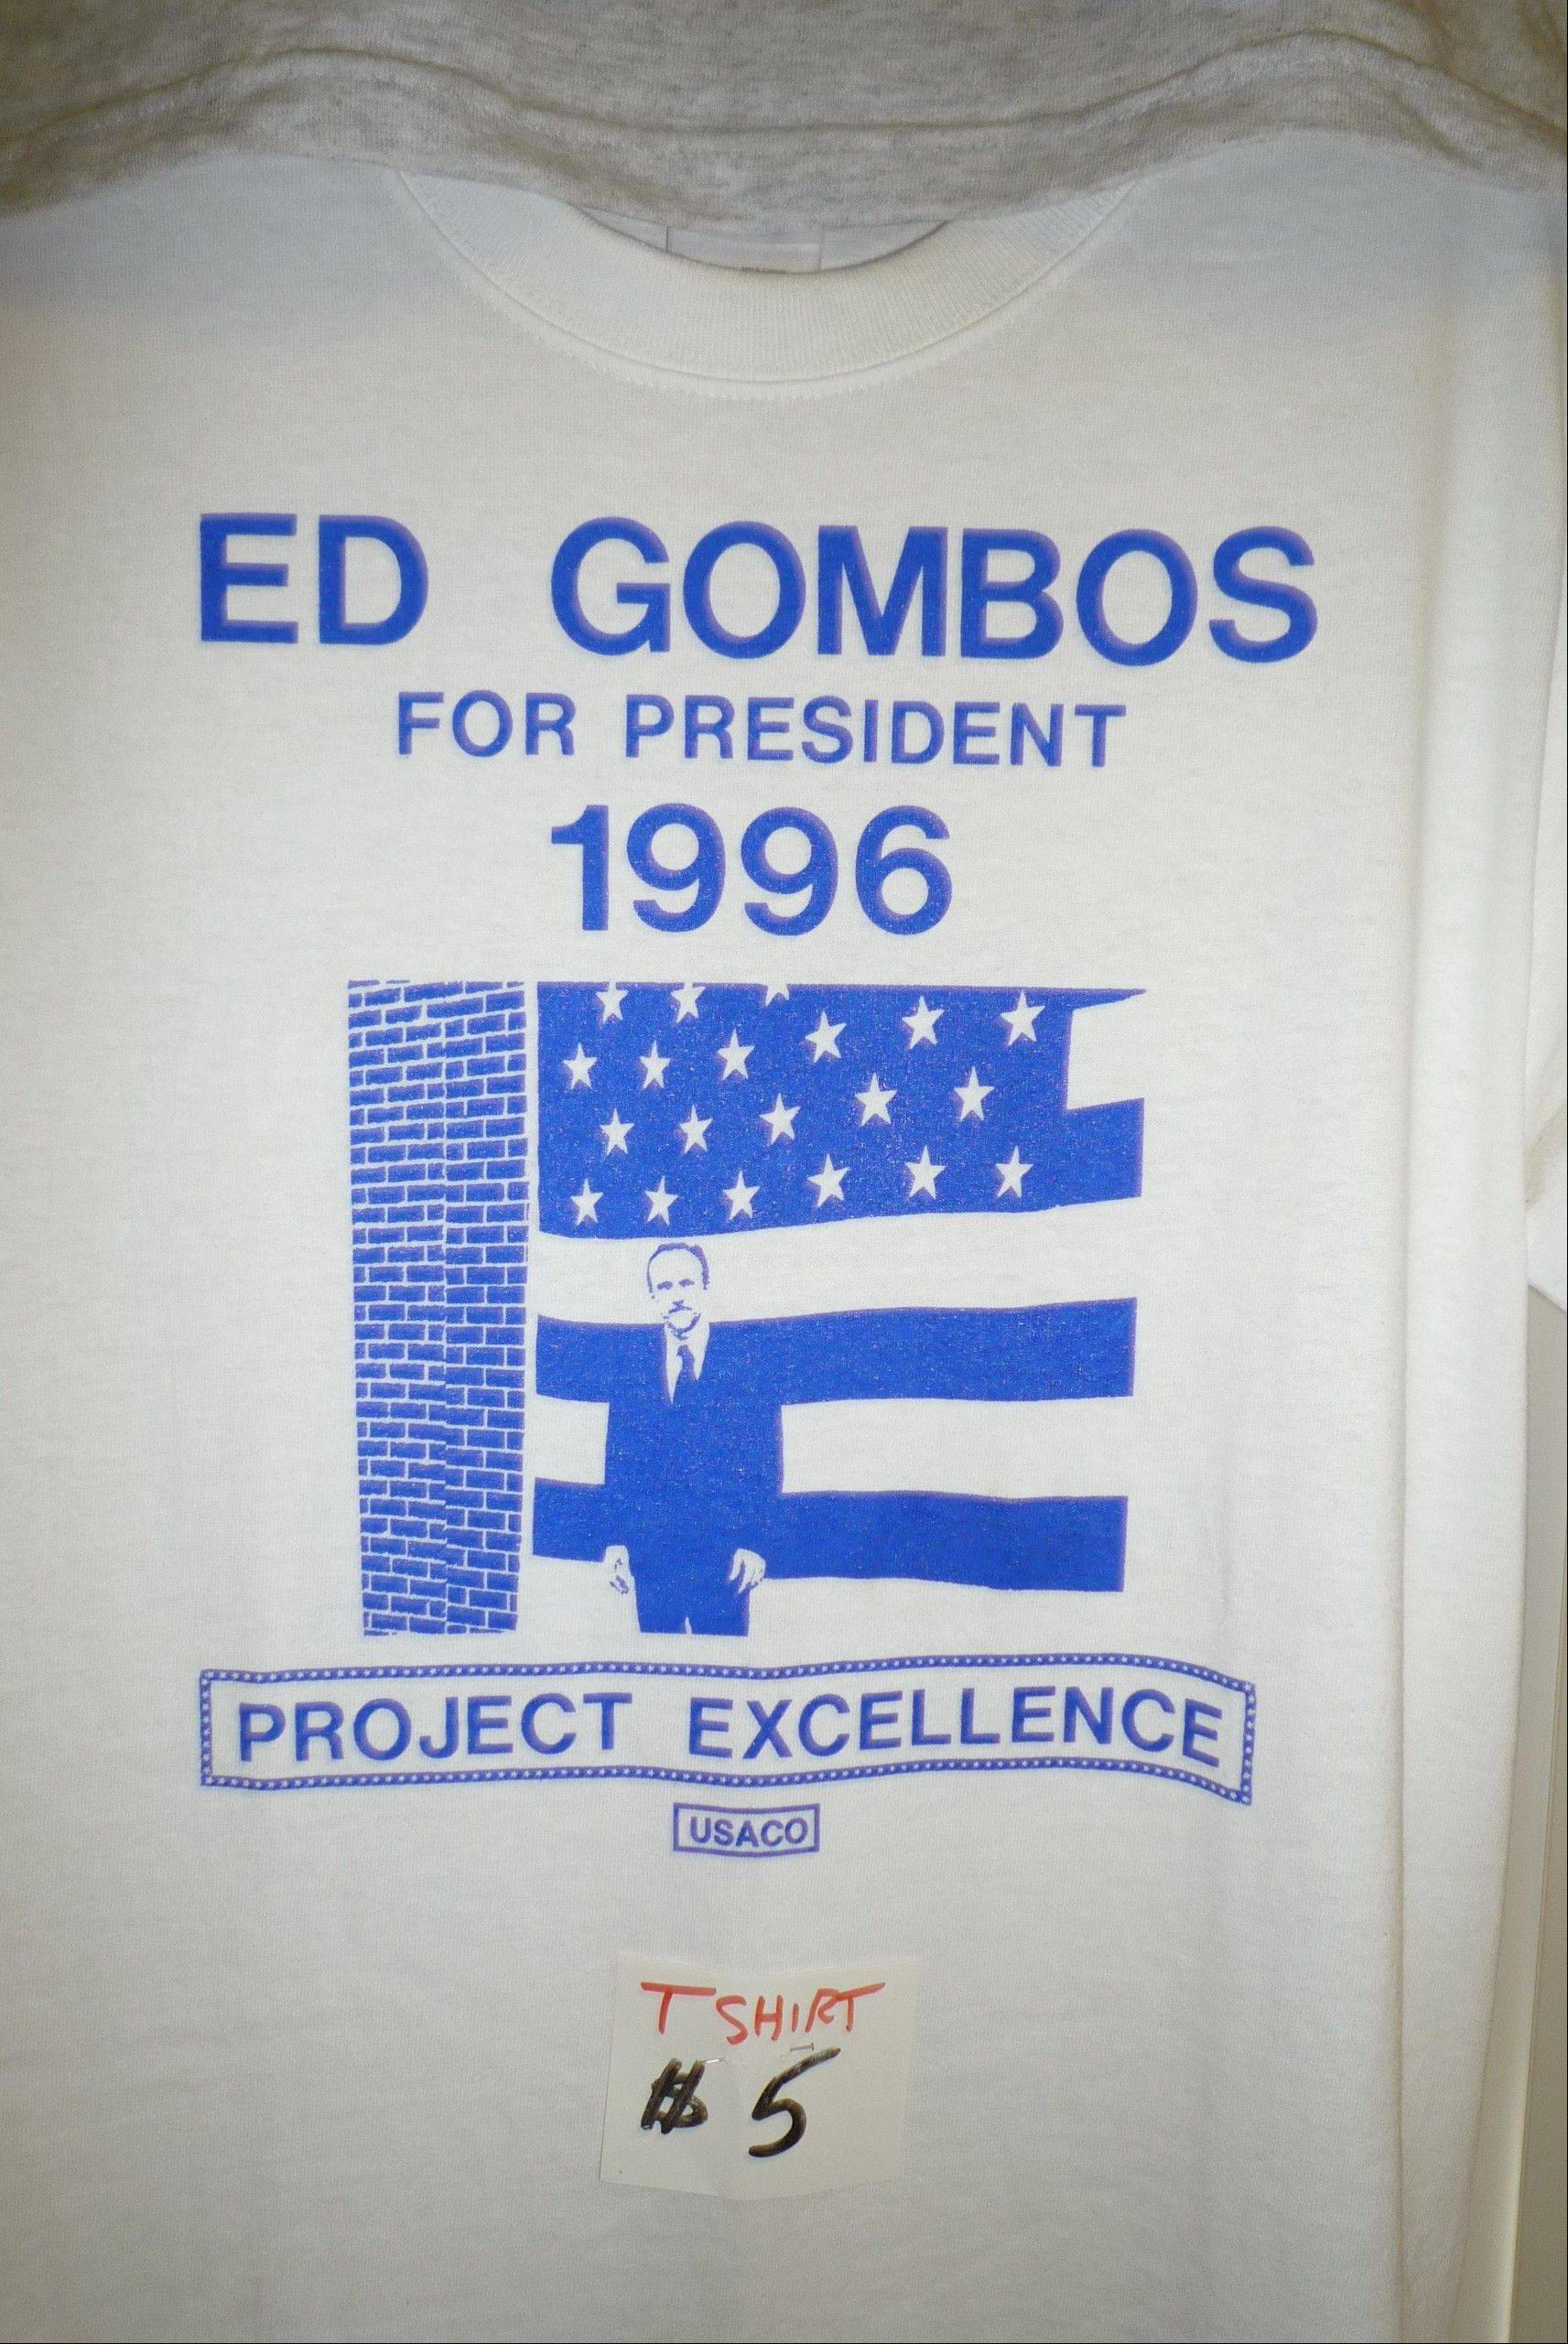 He didn't win, but Ed Gombos of Addison still has fond memories and a few leftover political T-shirts (only $5) from his quirky campaign for the White House in 1996.